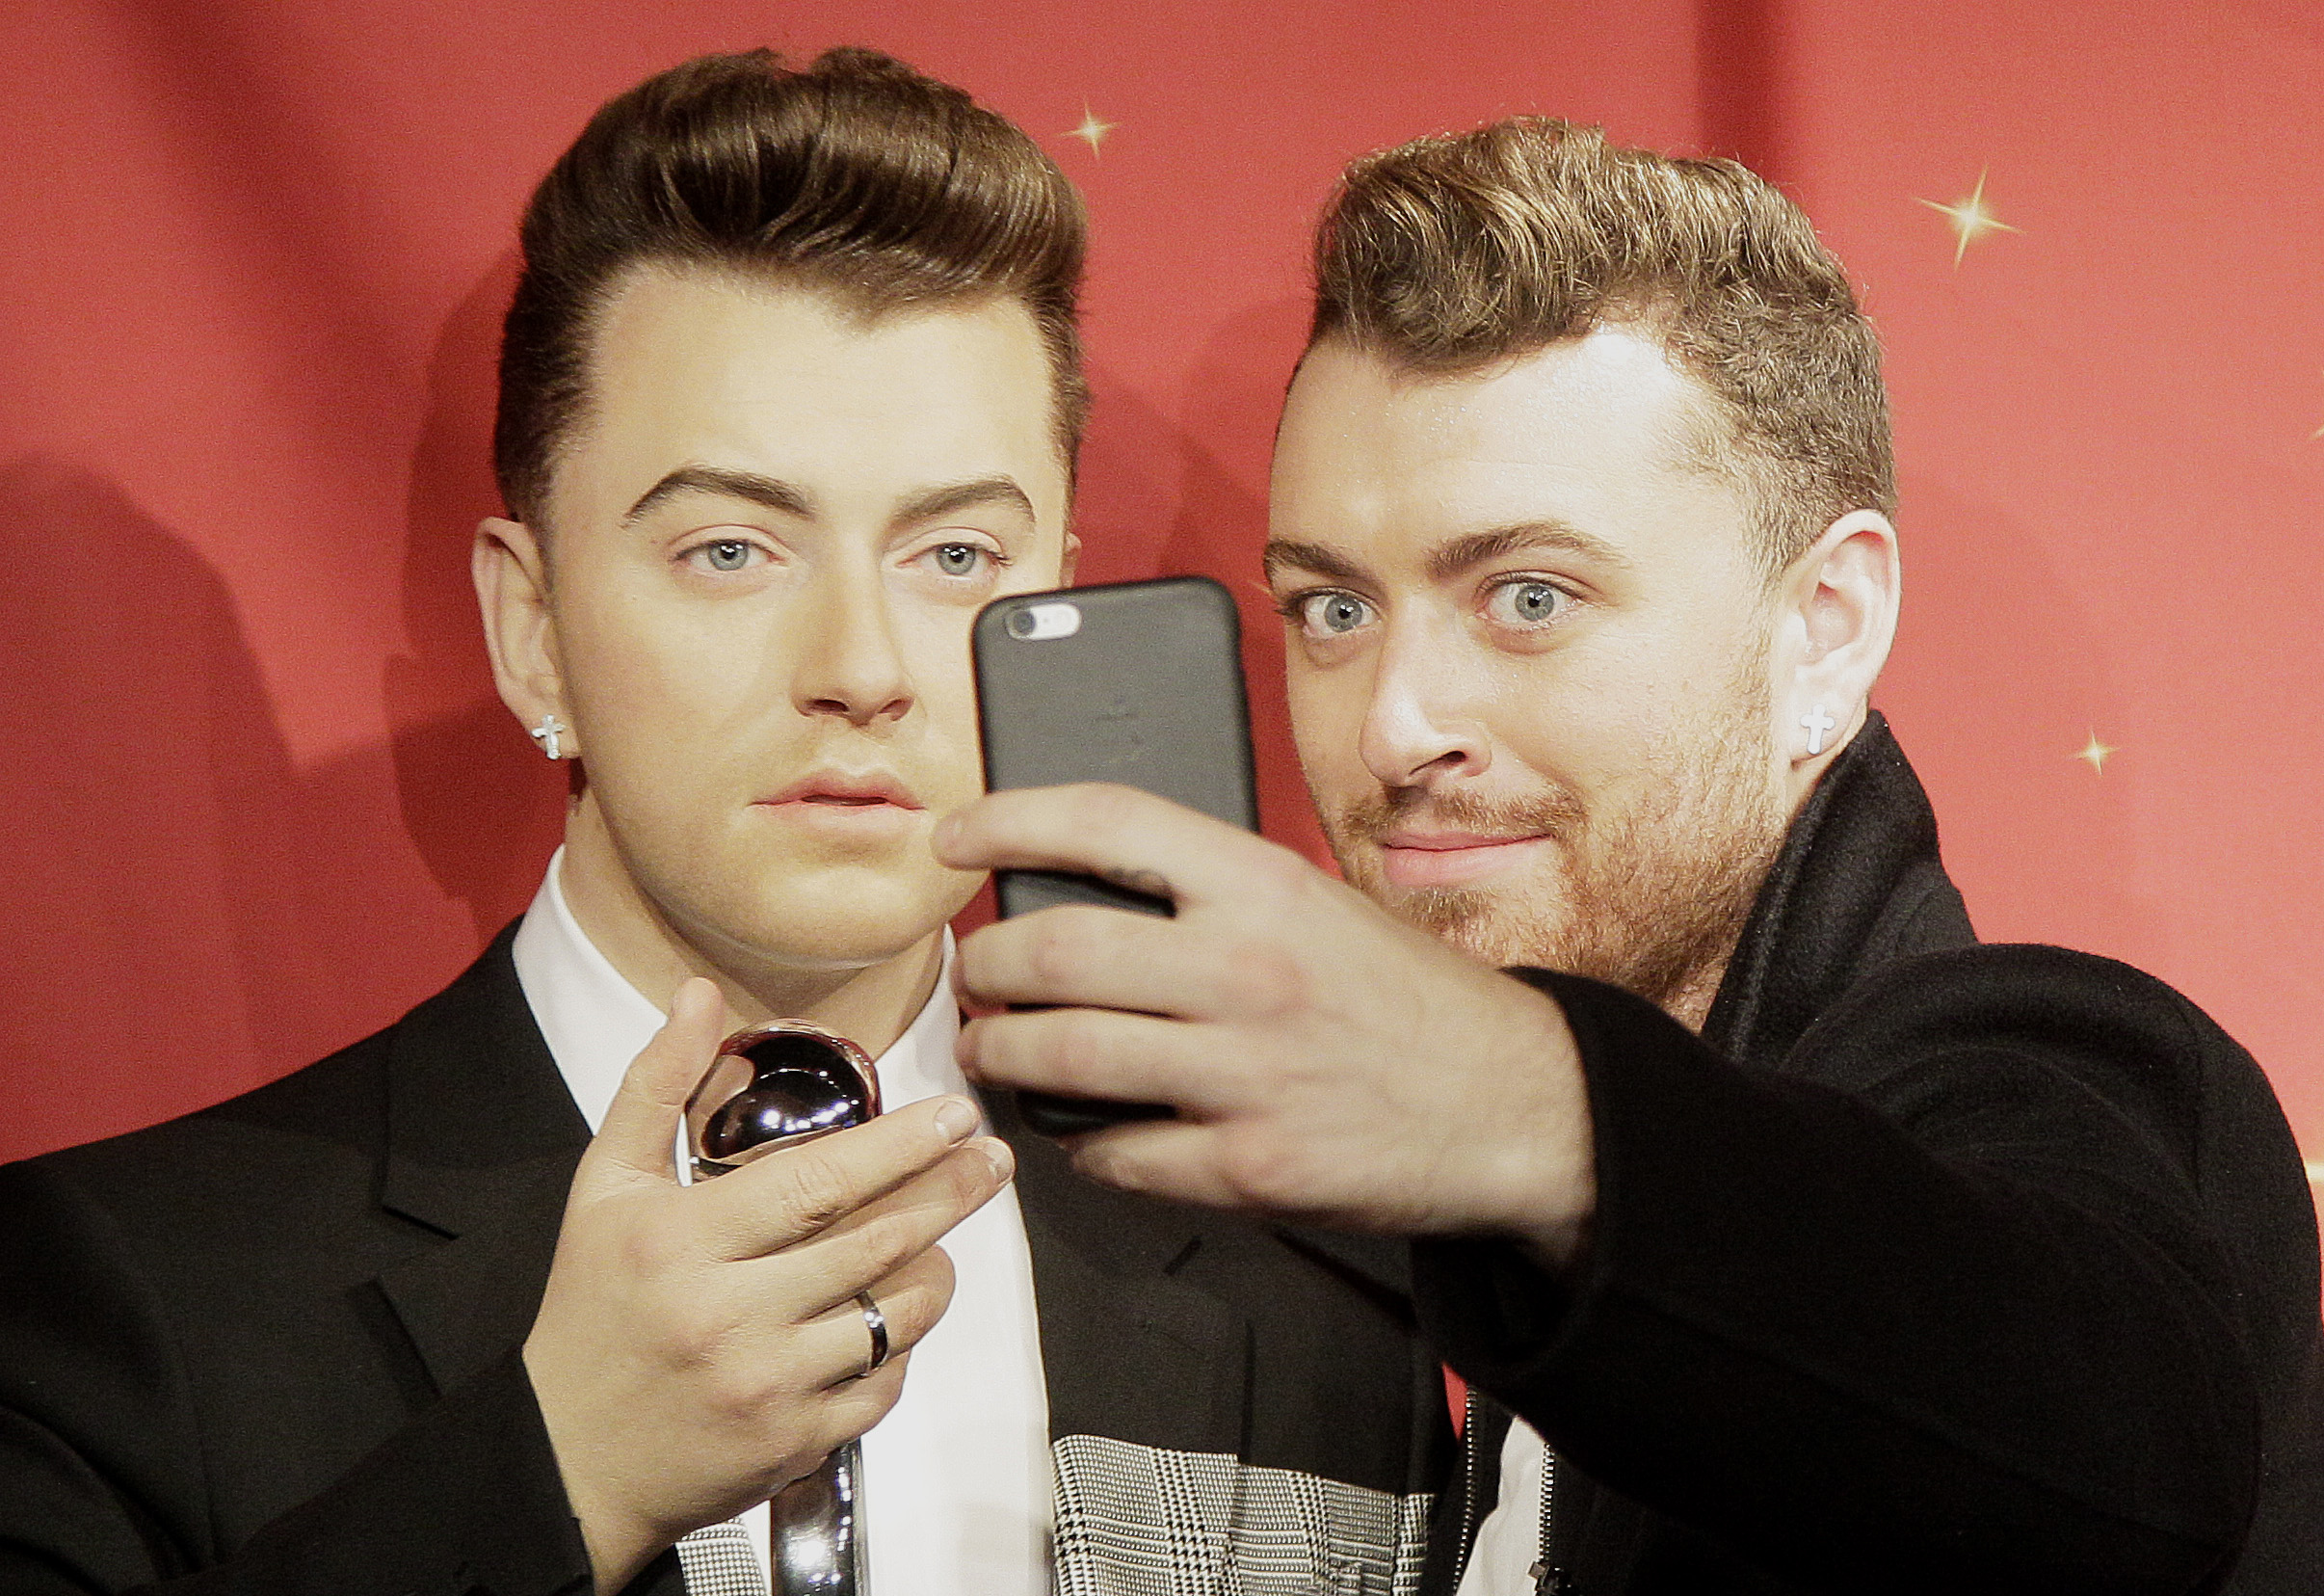 Singer Sam Smith takes a selfie next to his wax figure at Madame Tussauds wax museum in San Francisco on Aug. 10, 2015.